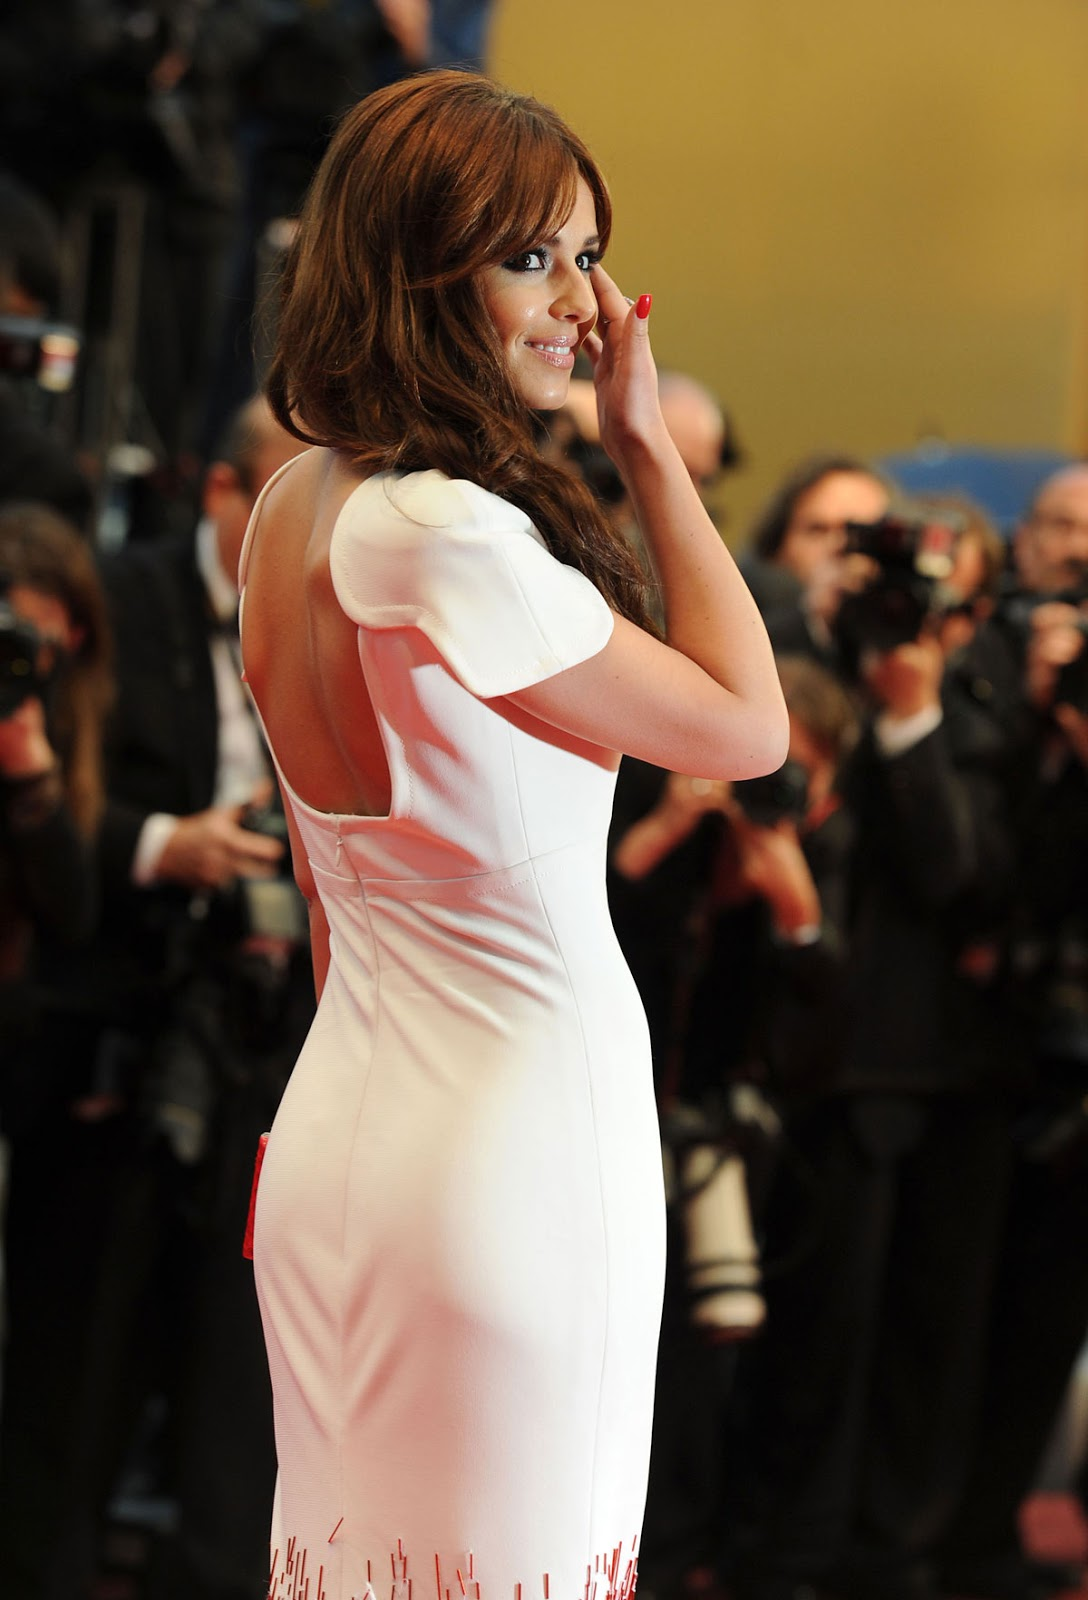 Cheryl Cole At Amour Premiere At Cannes Film Festival